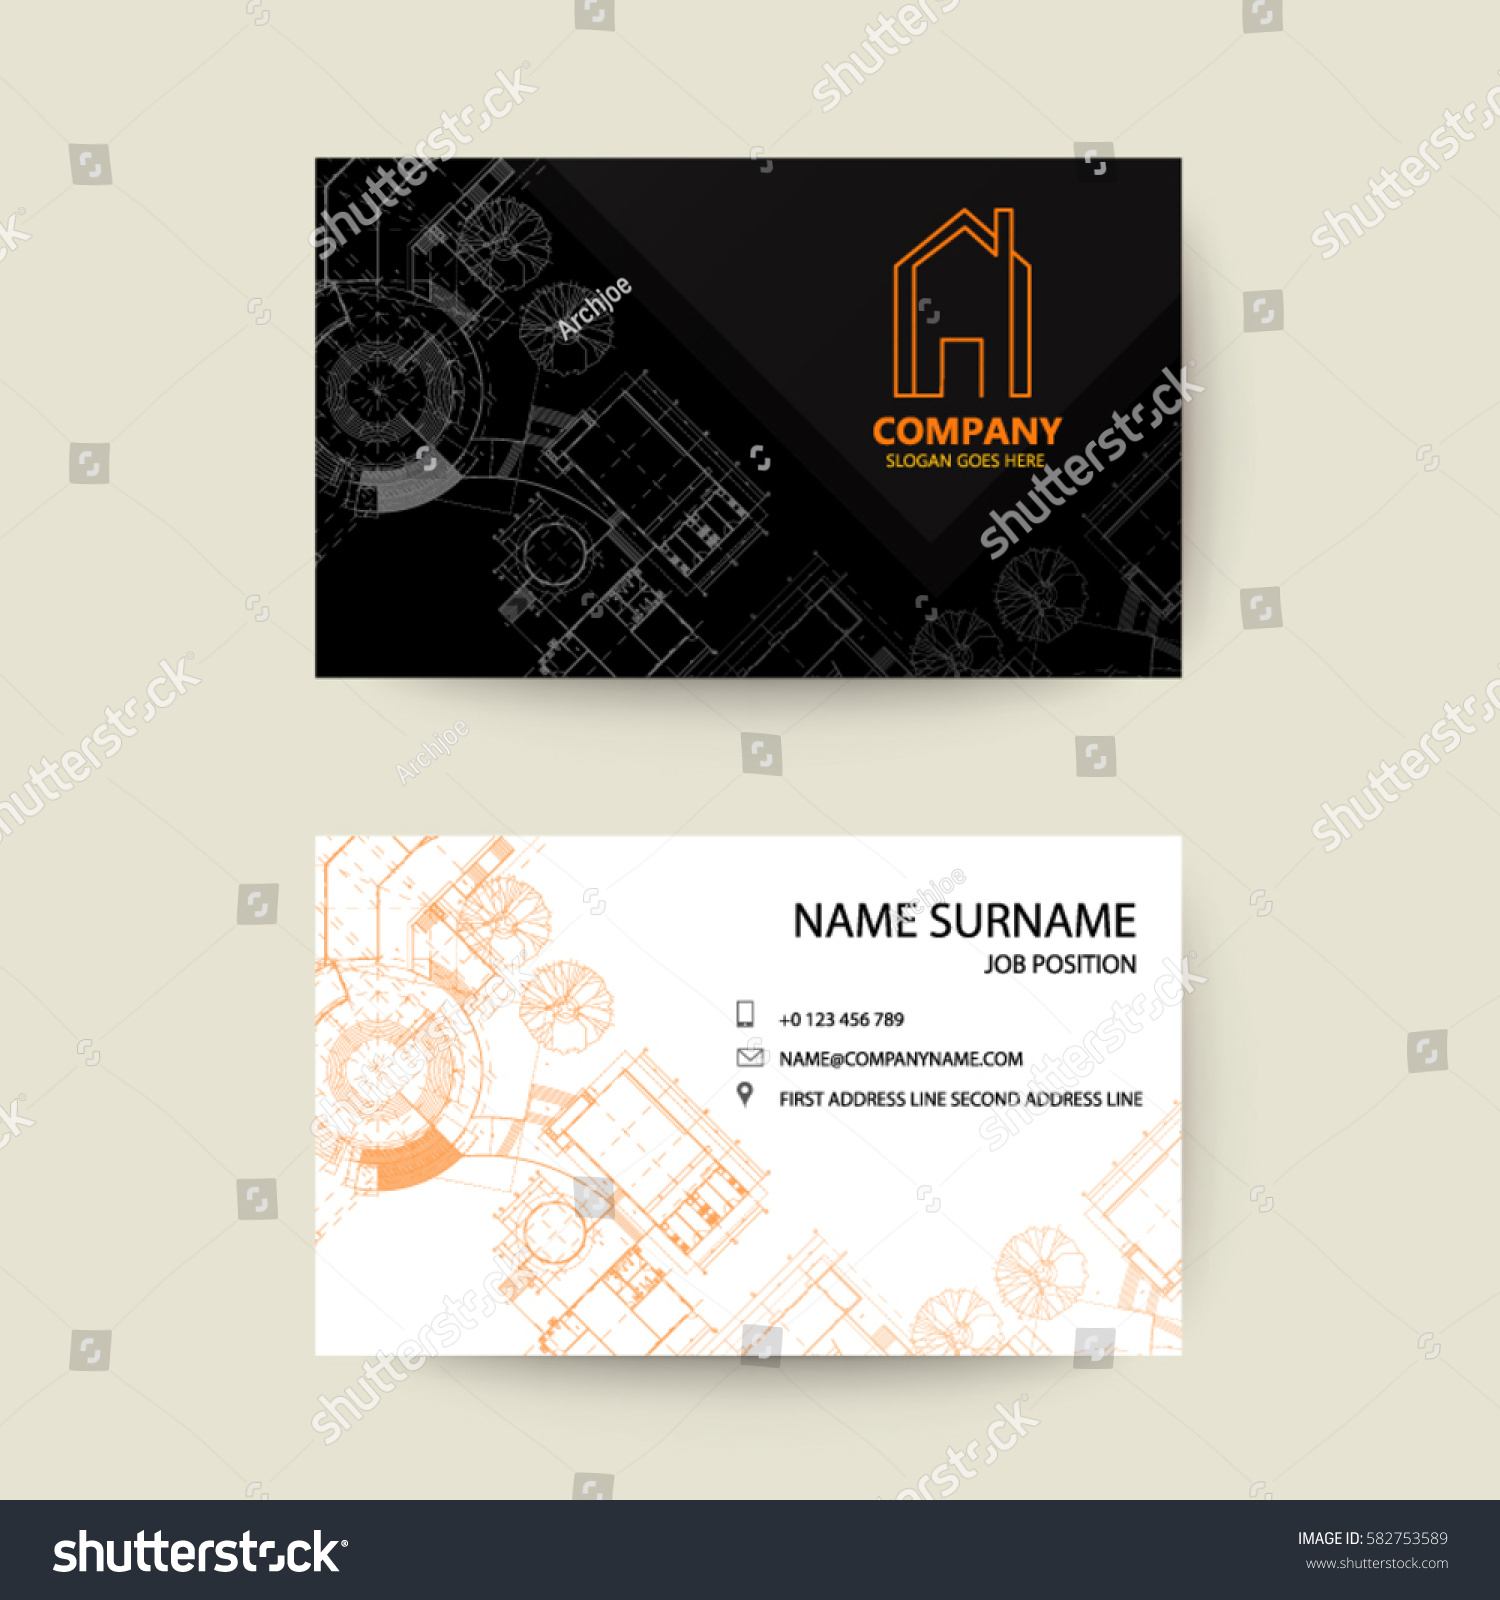 eps10 vector illustration abstract elegant business stock vector